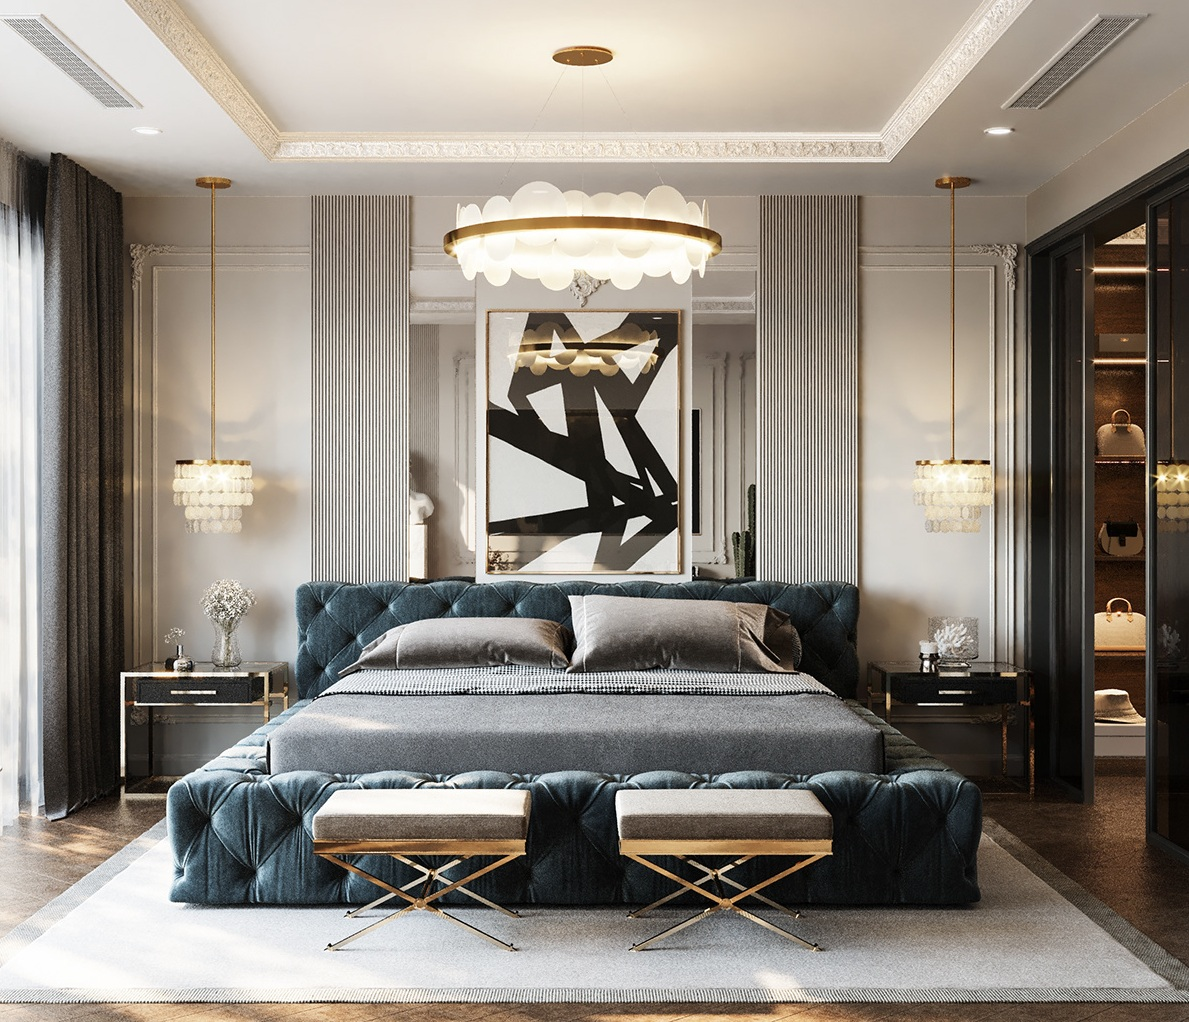 Abstract Design To Highlight Your Wall And Chandelier For Celing To Beautify Your Master Bedroom